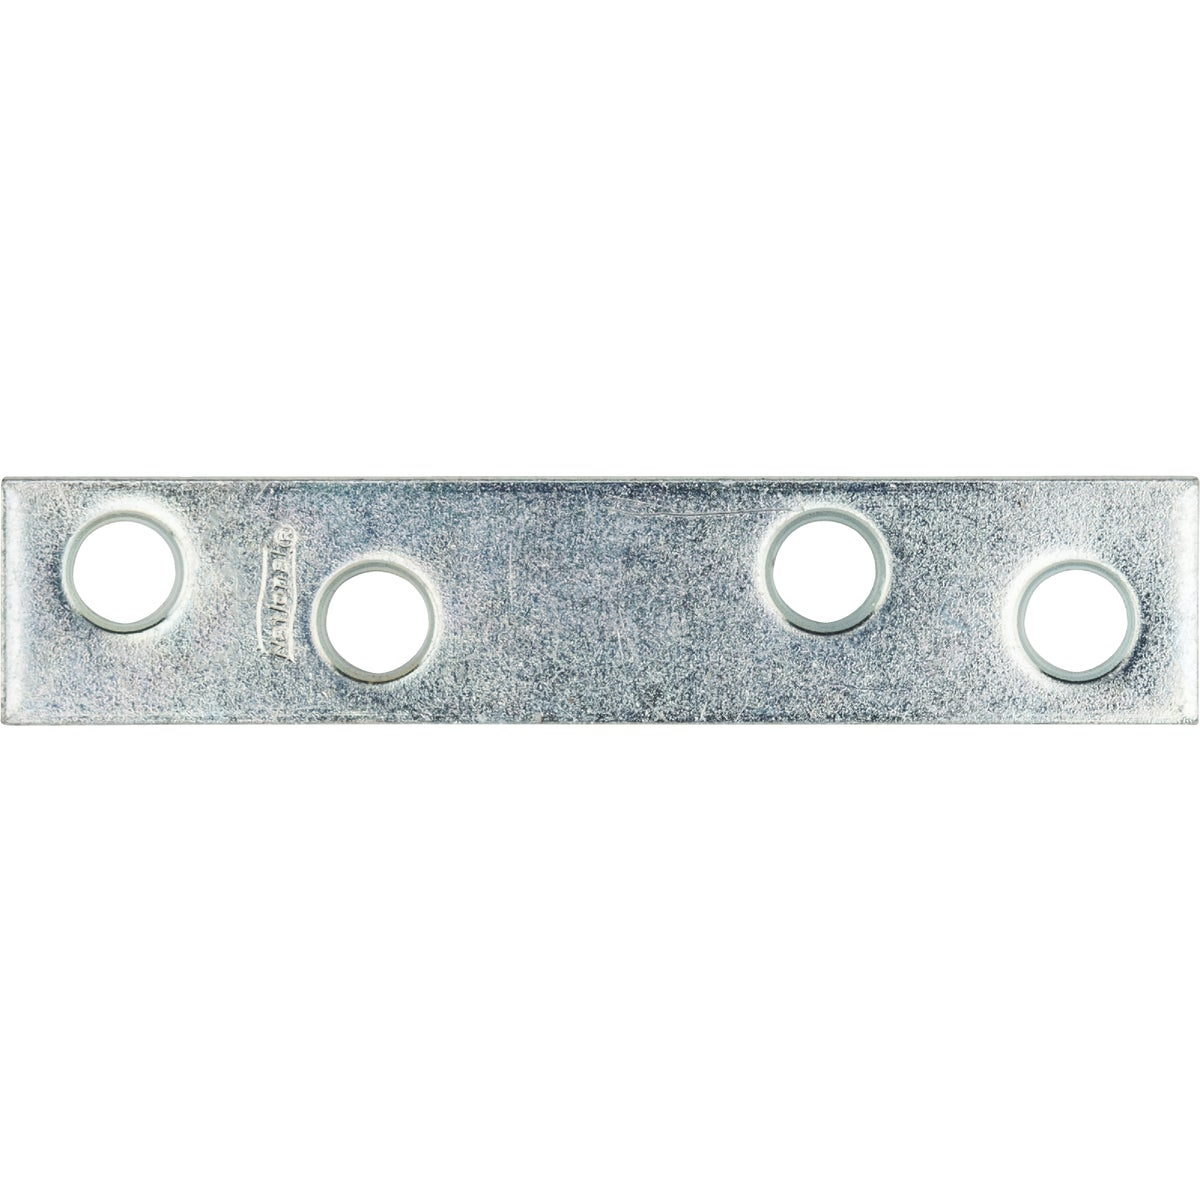 3X5/8 MENDING BRACE - N272724 by National Mfg Co